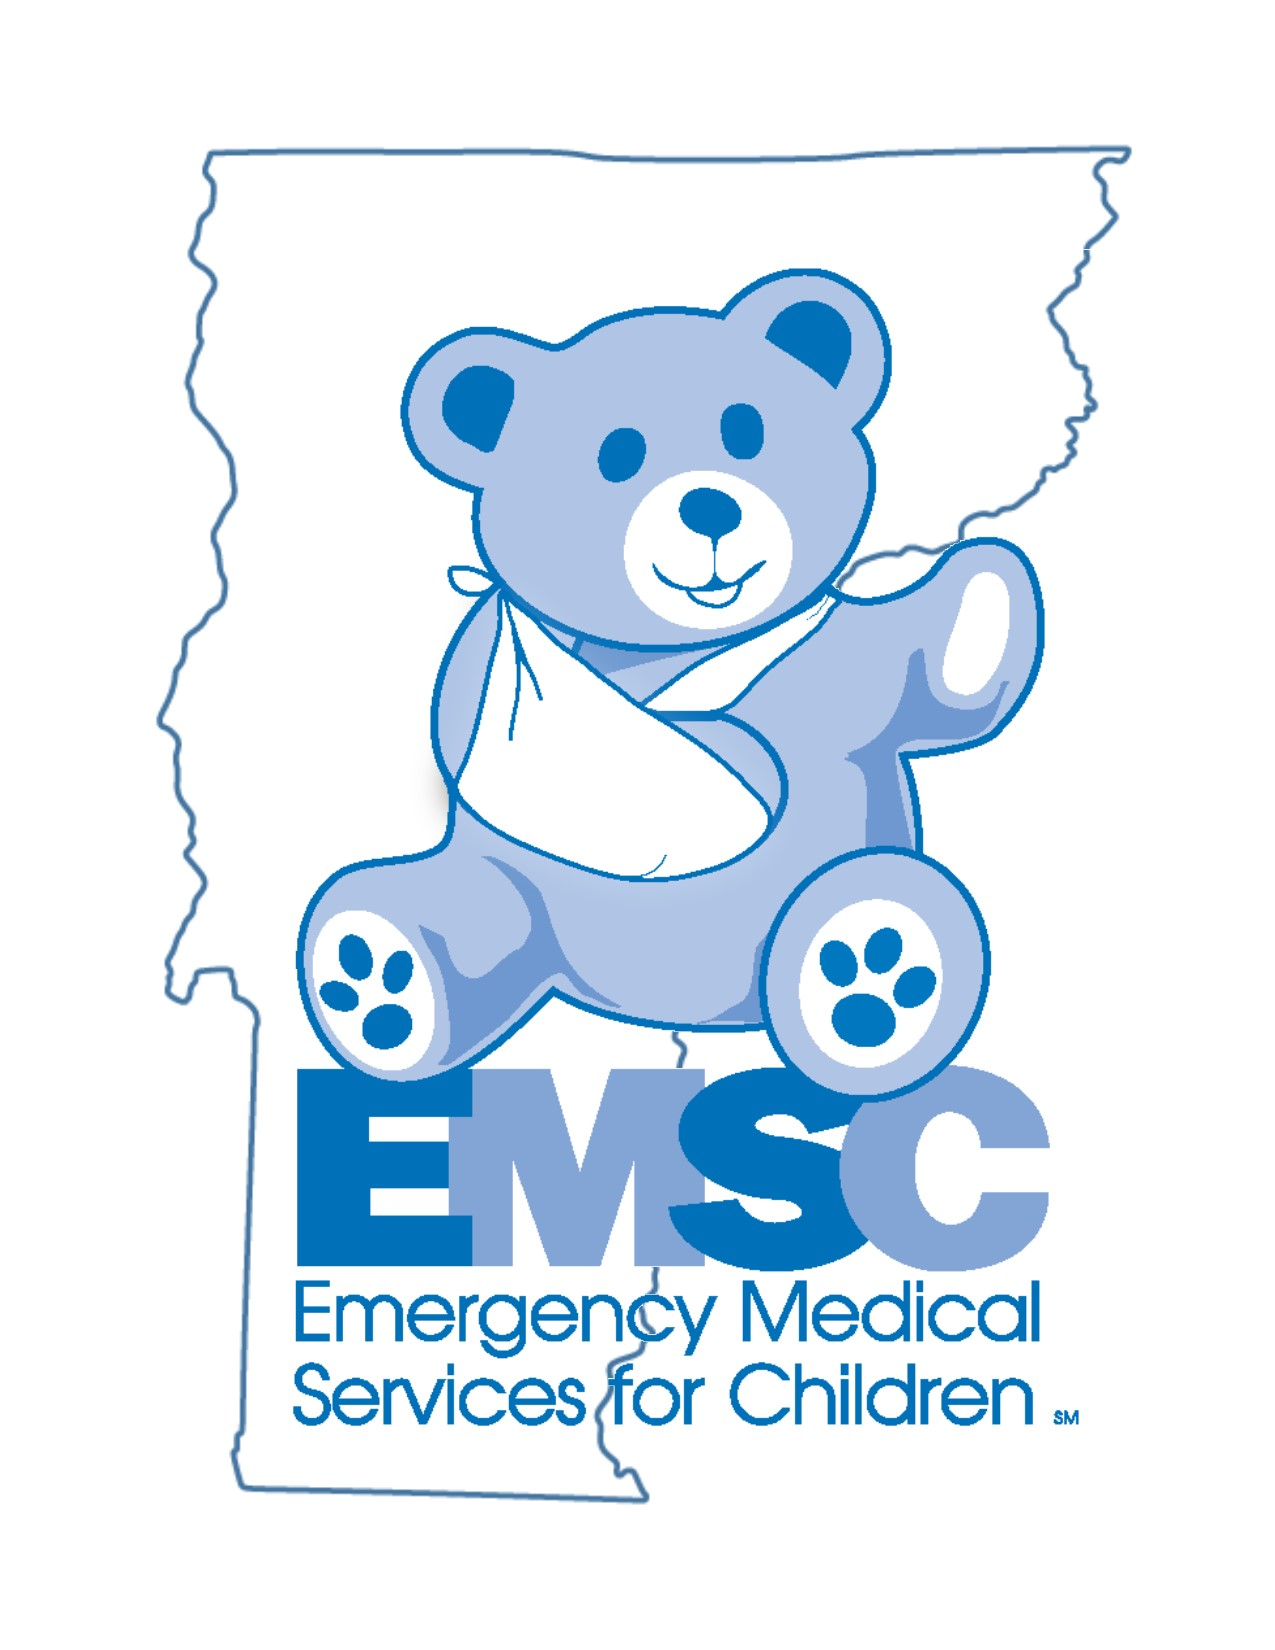 Emergency Medical Services for Children logo- a blue bear with an arm sling